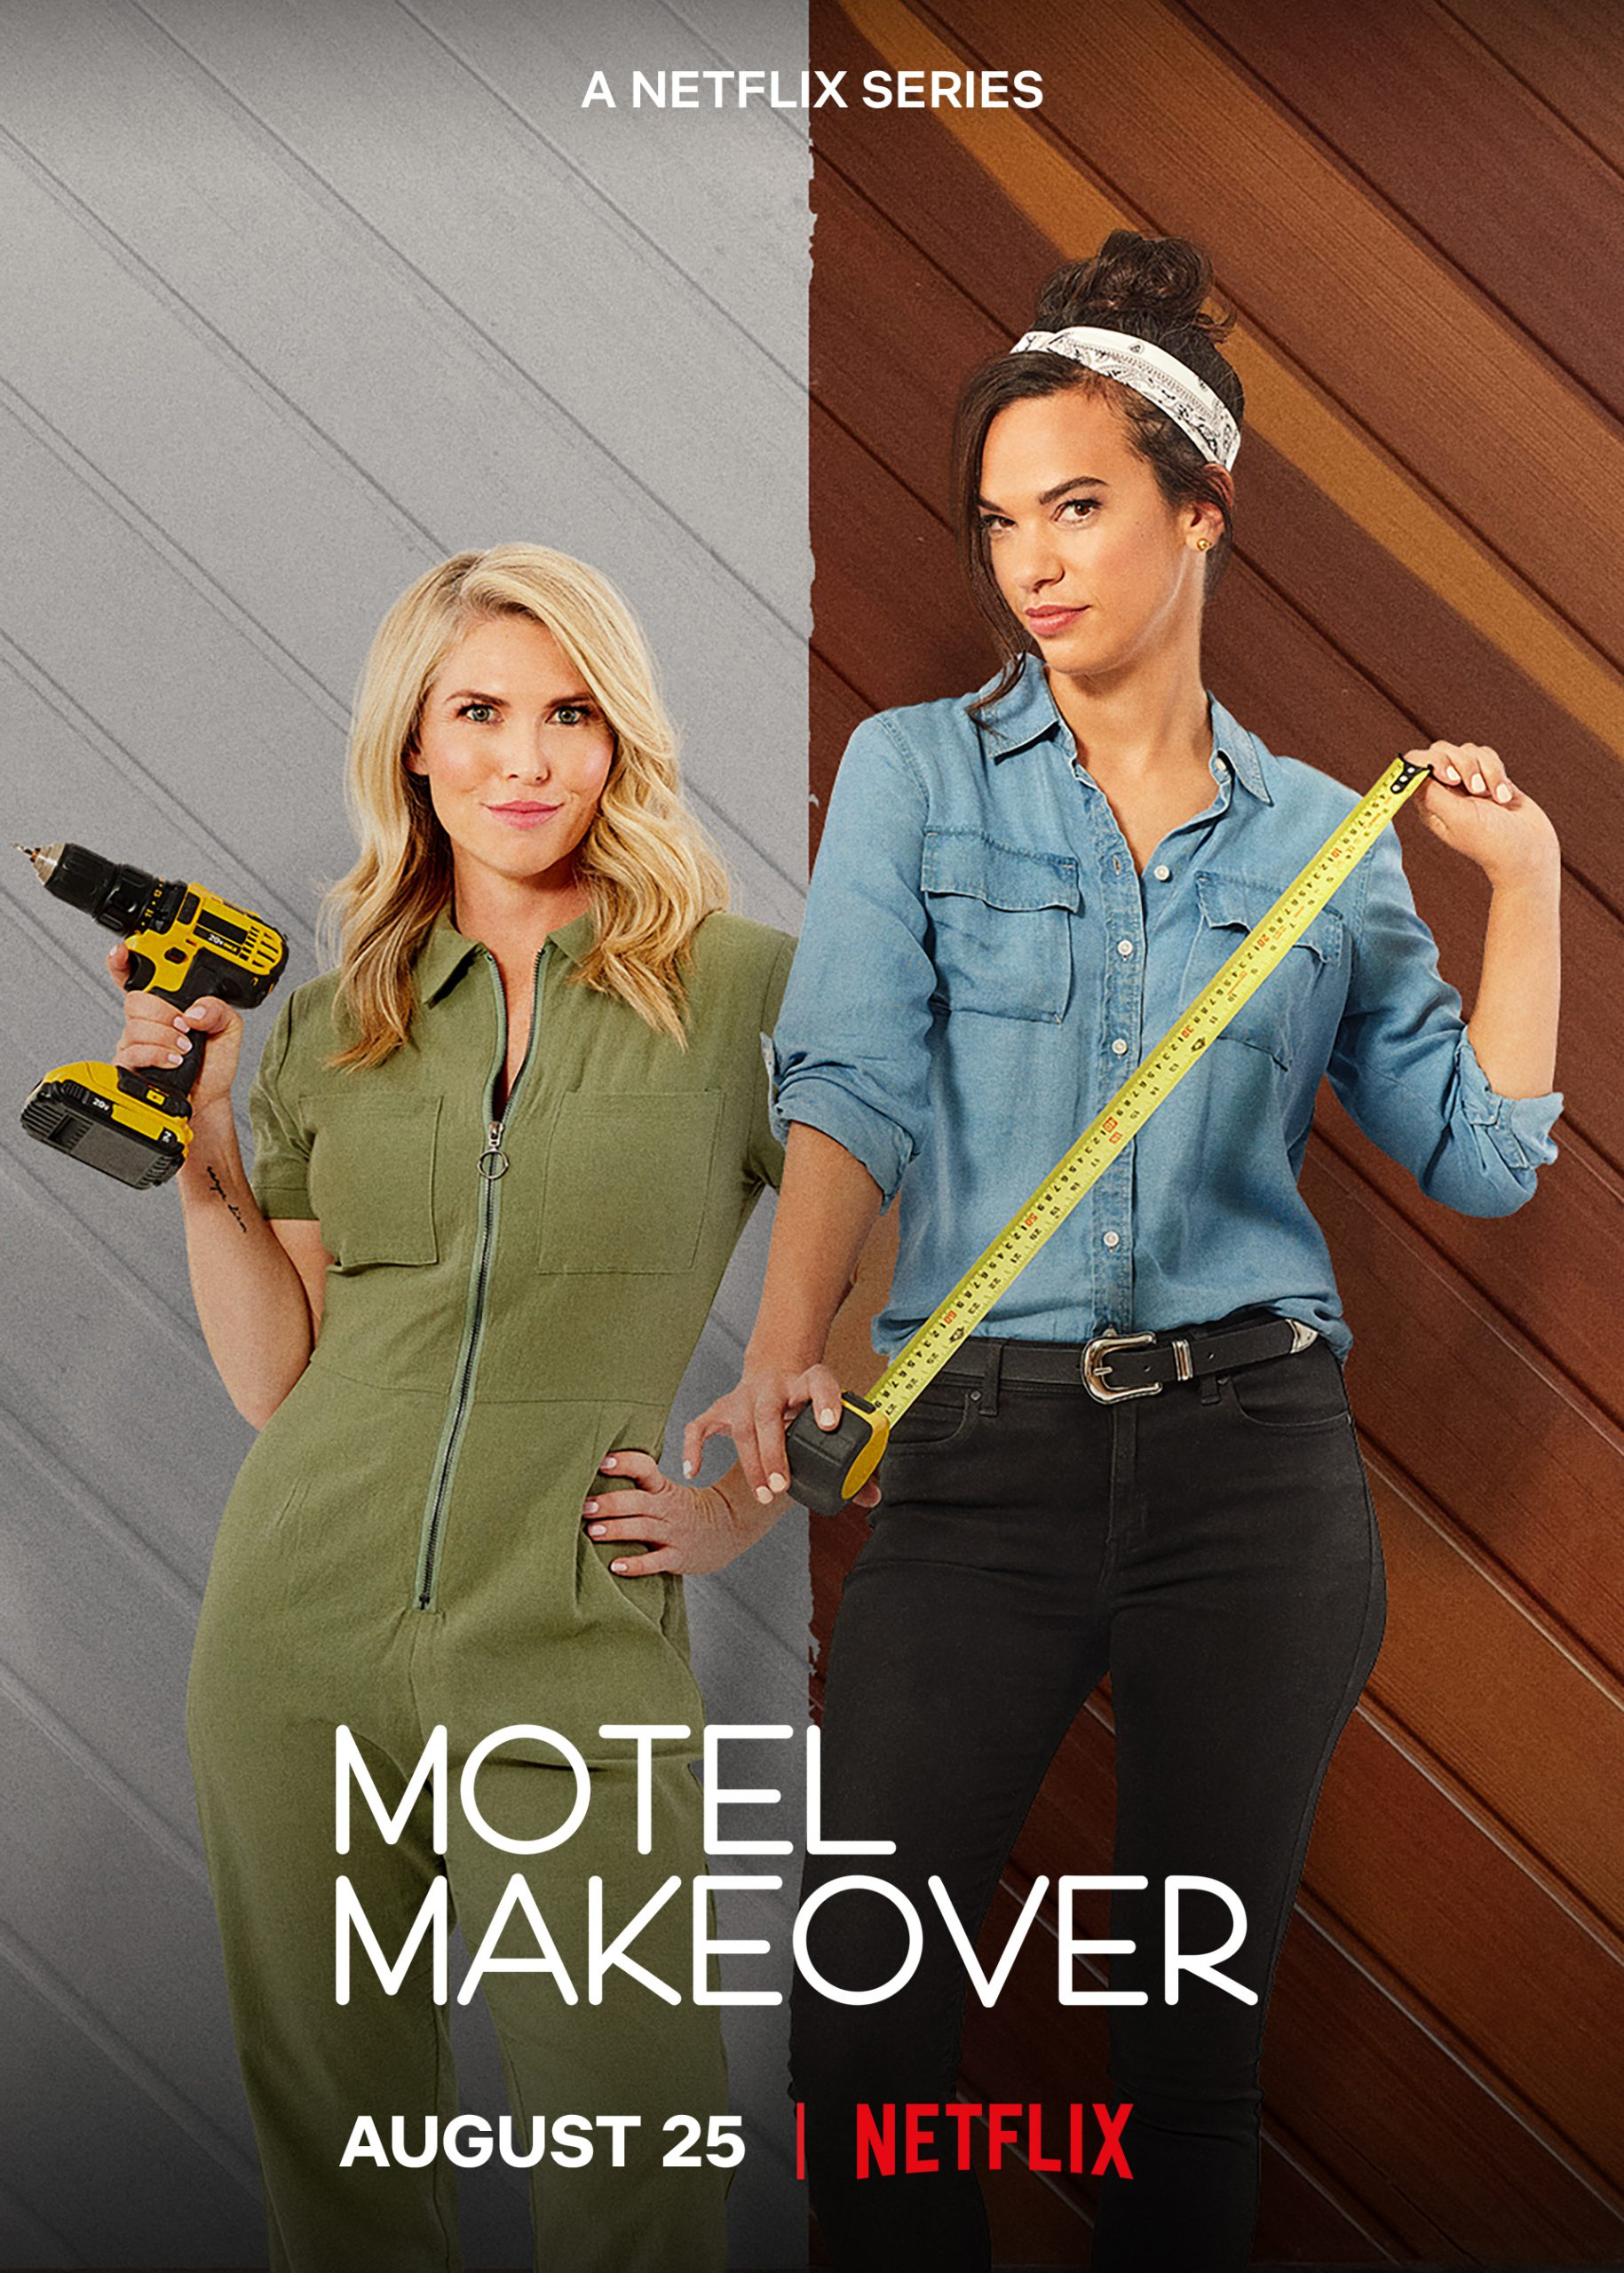 Promotional poster for Netflix' Motel Makeover. Two women standing side-by-side holding construction tools